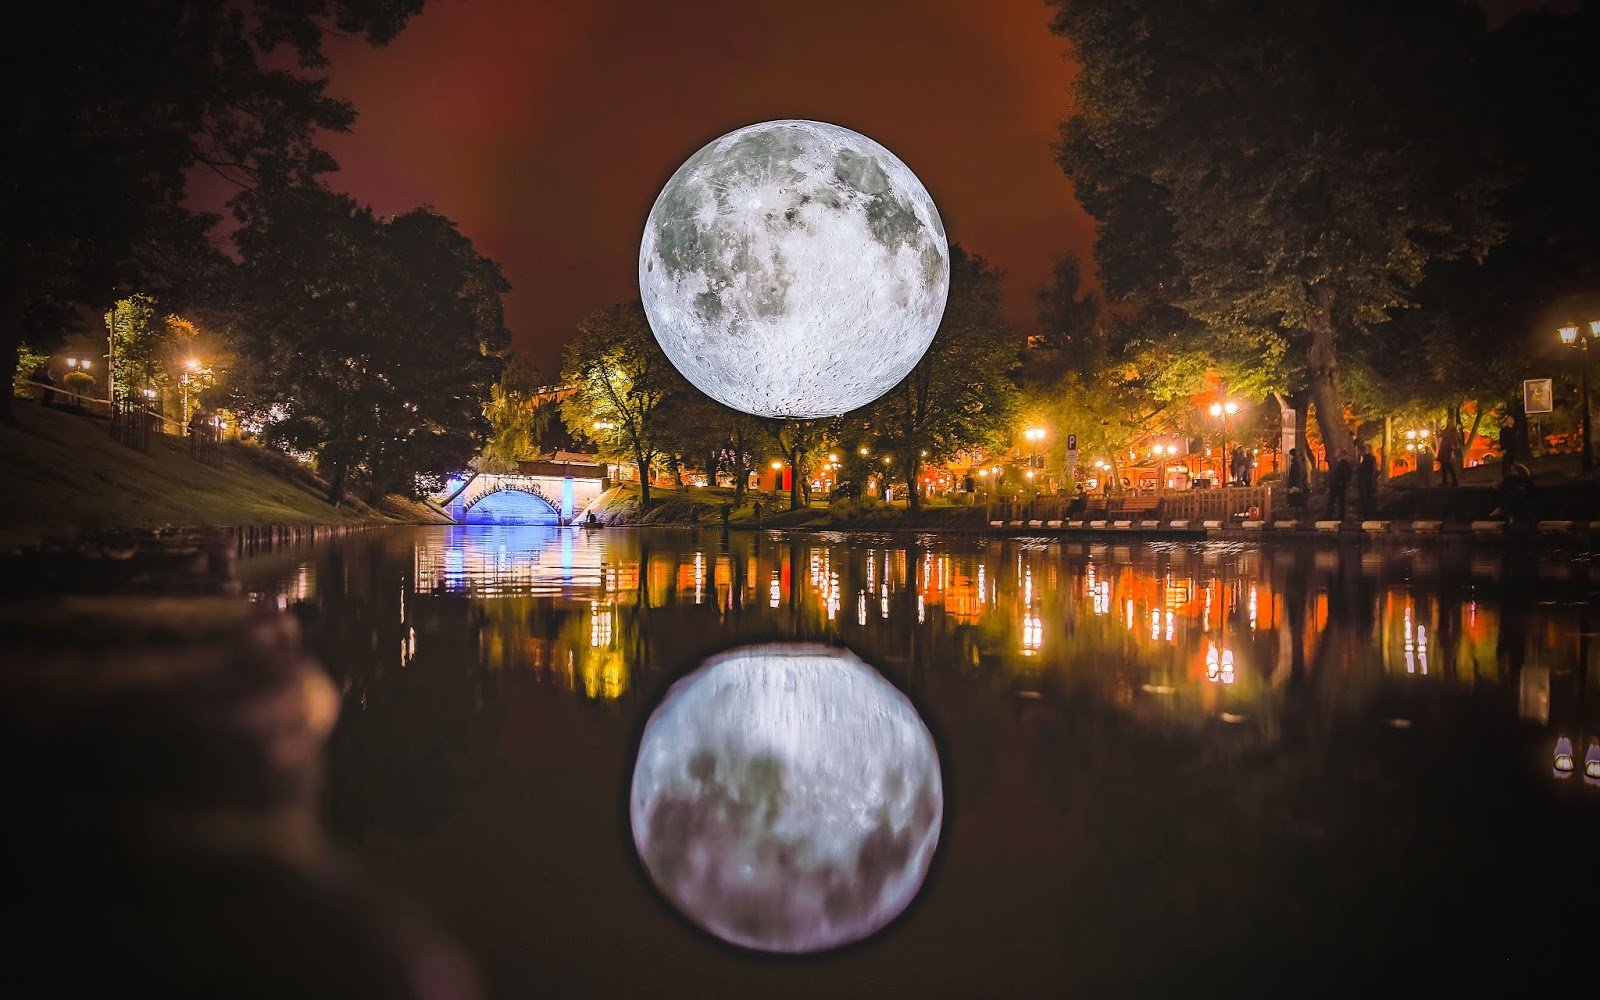 Brand New Light Show in Teesside - Nightfall 2019 By The Light of the Moon at Preston Park Museum and Grounds